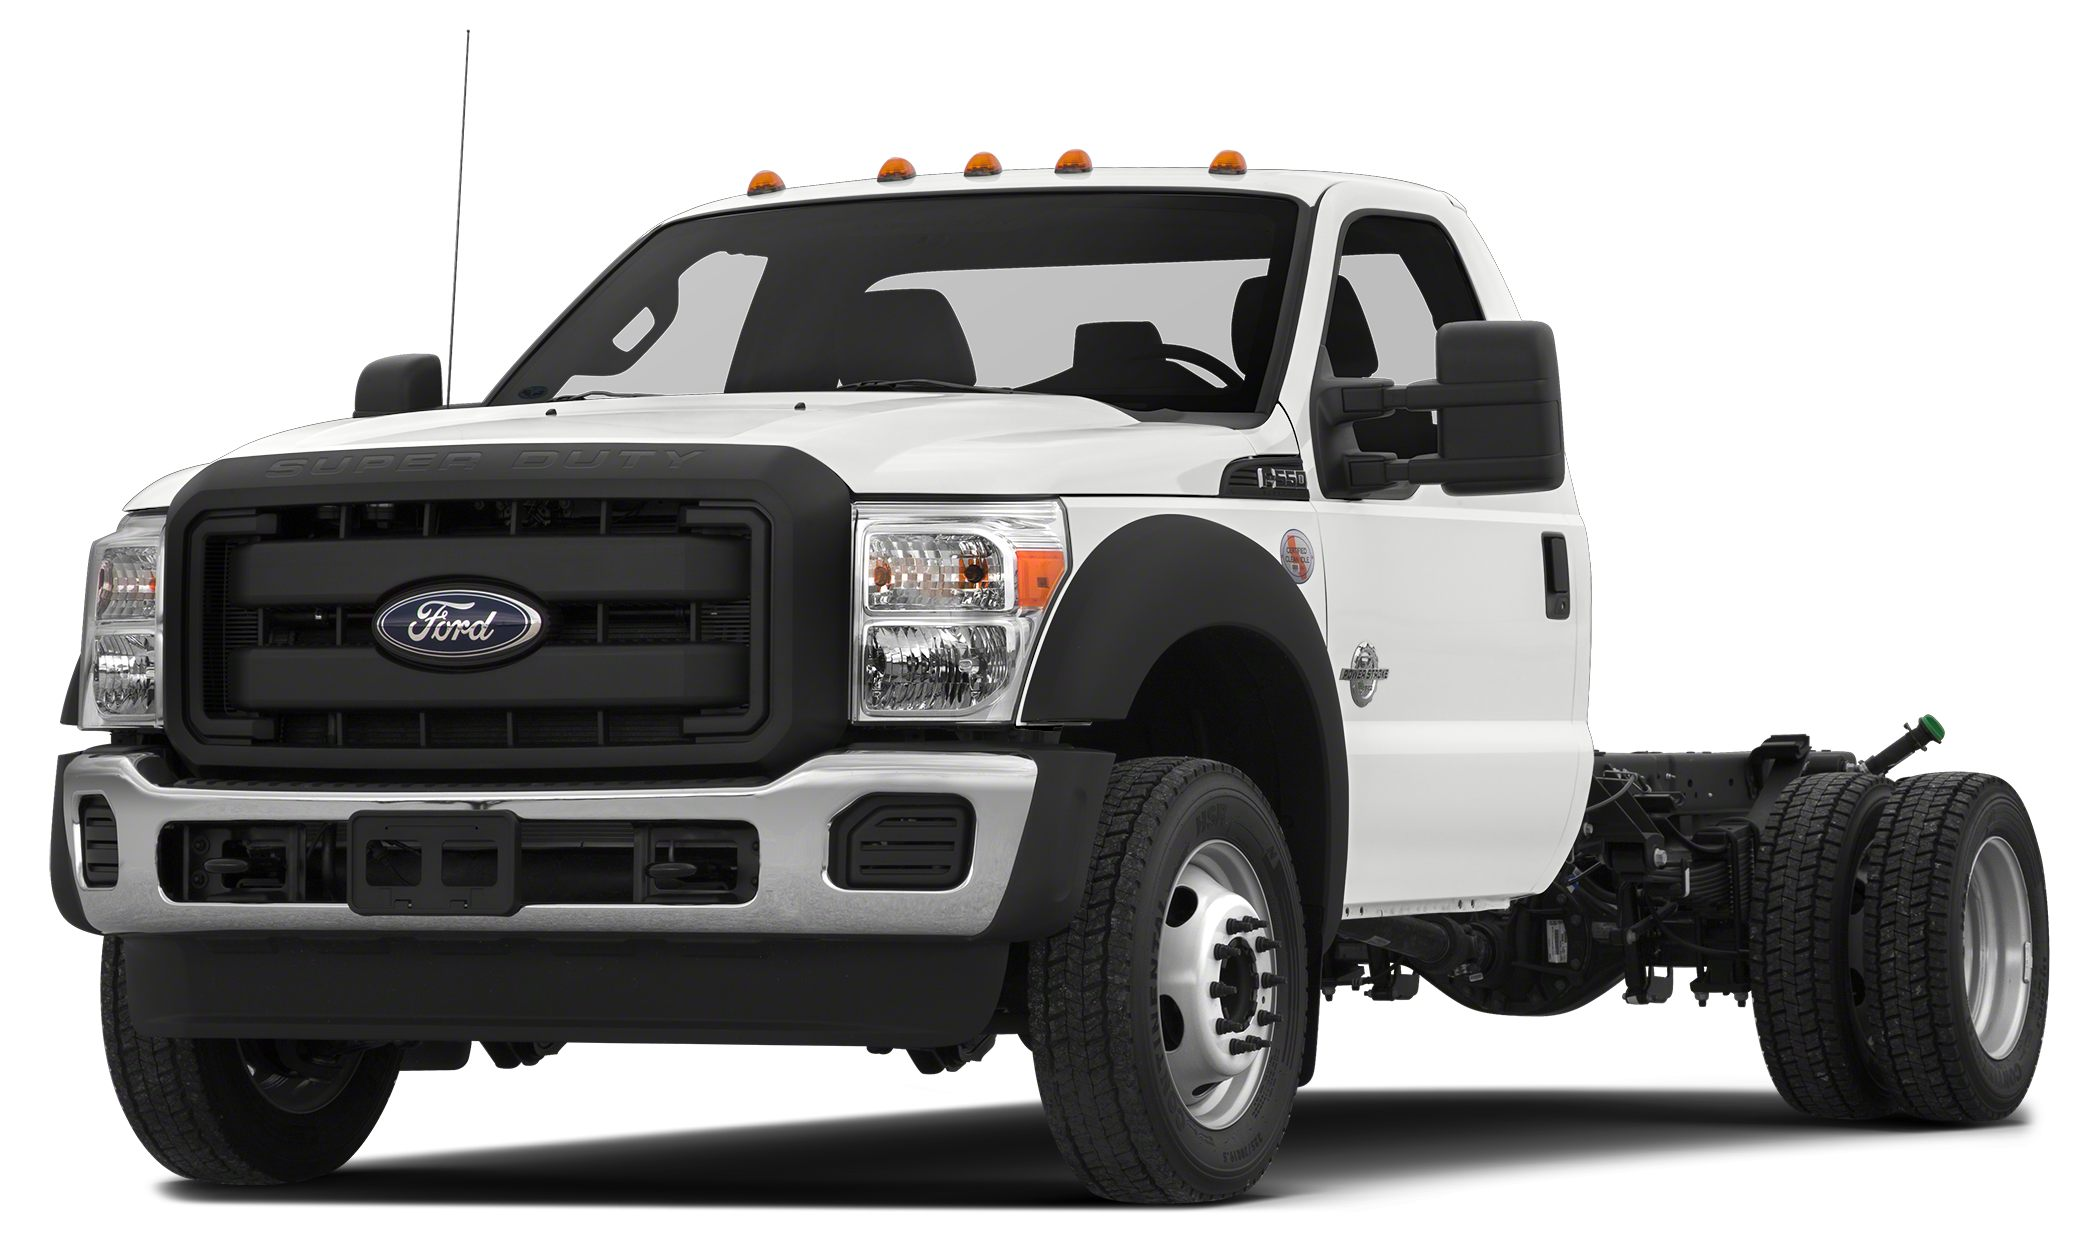 2016 Ford F-450 Chassis Cab